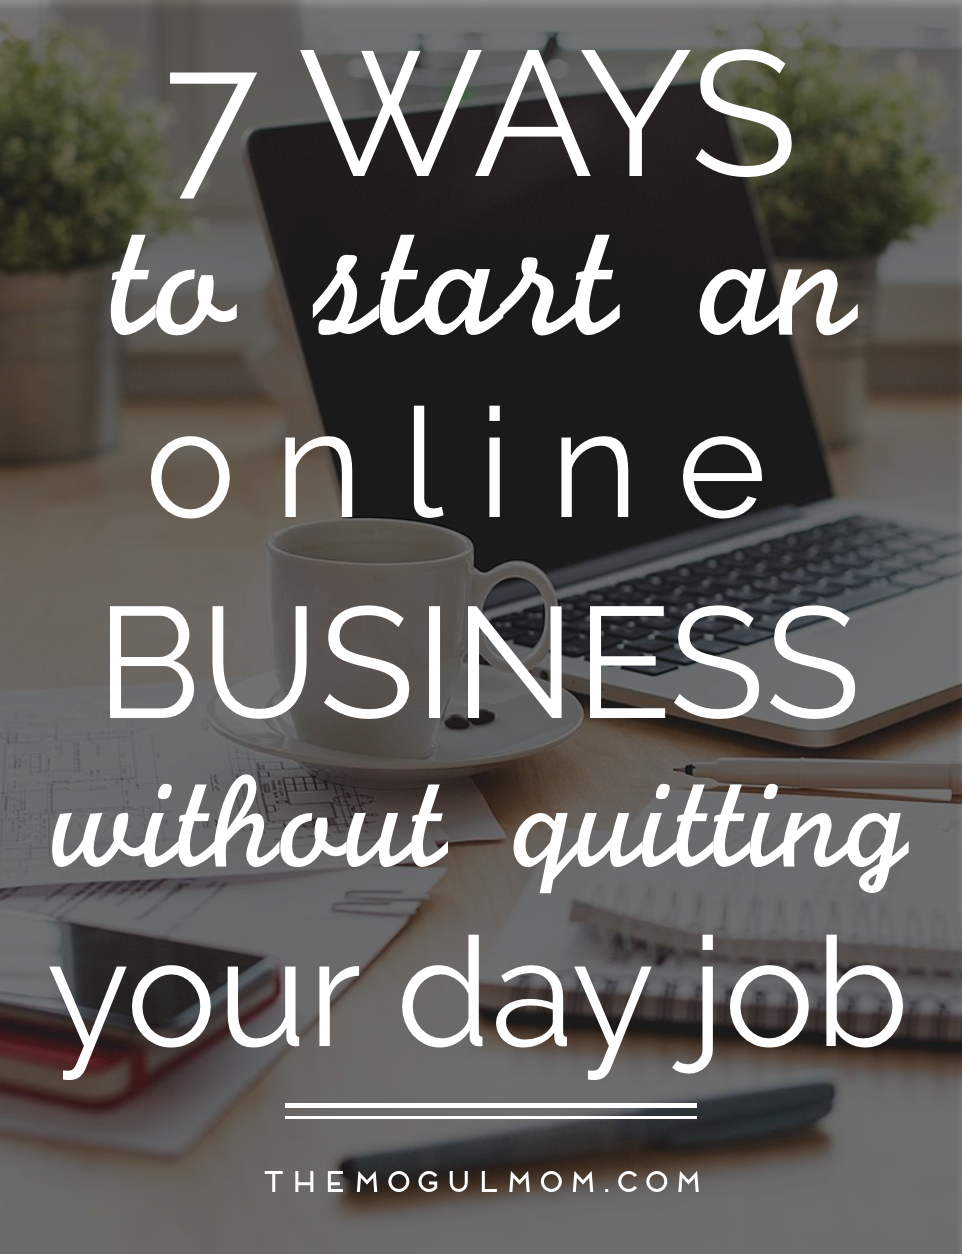 7 Ways To Start An Online Business, Without Quitting Your Day Job (Yet)